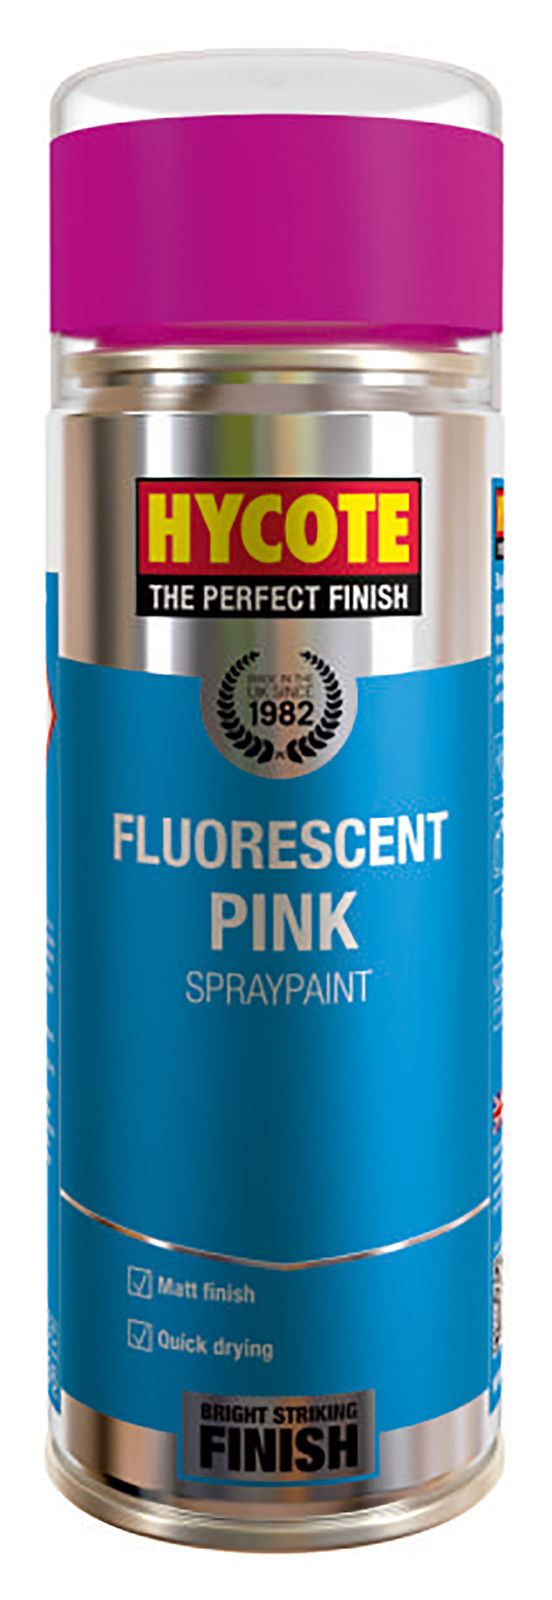 Hycote Fluorescent Pink Paint - 400ml